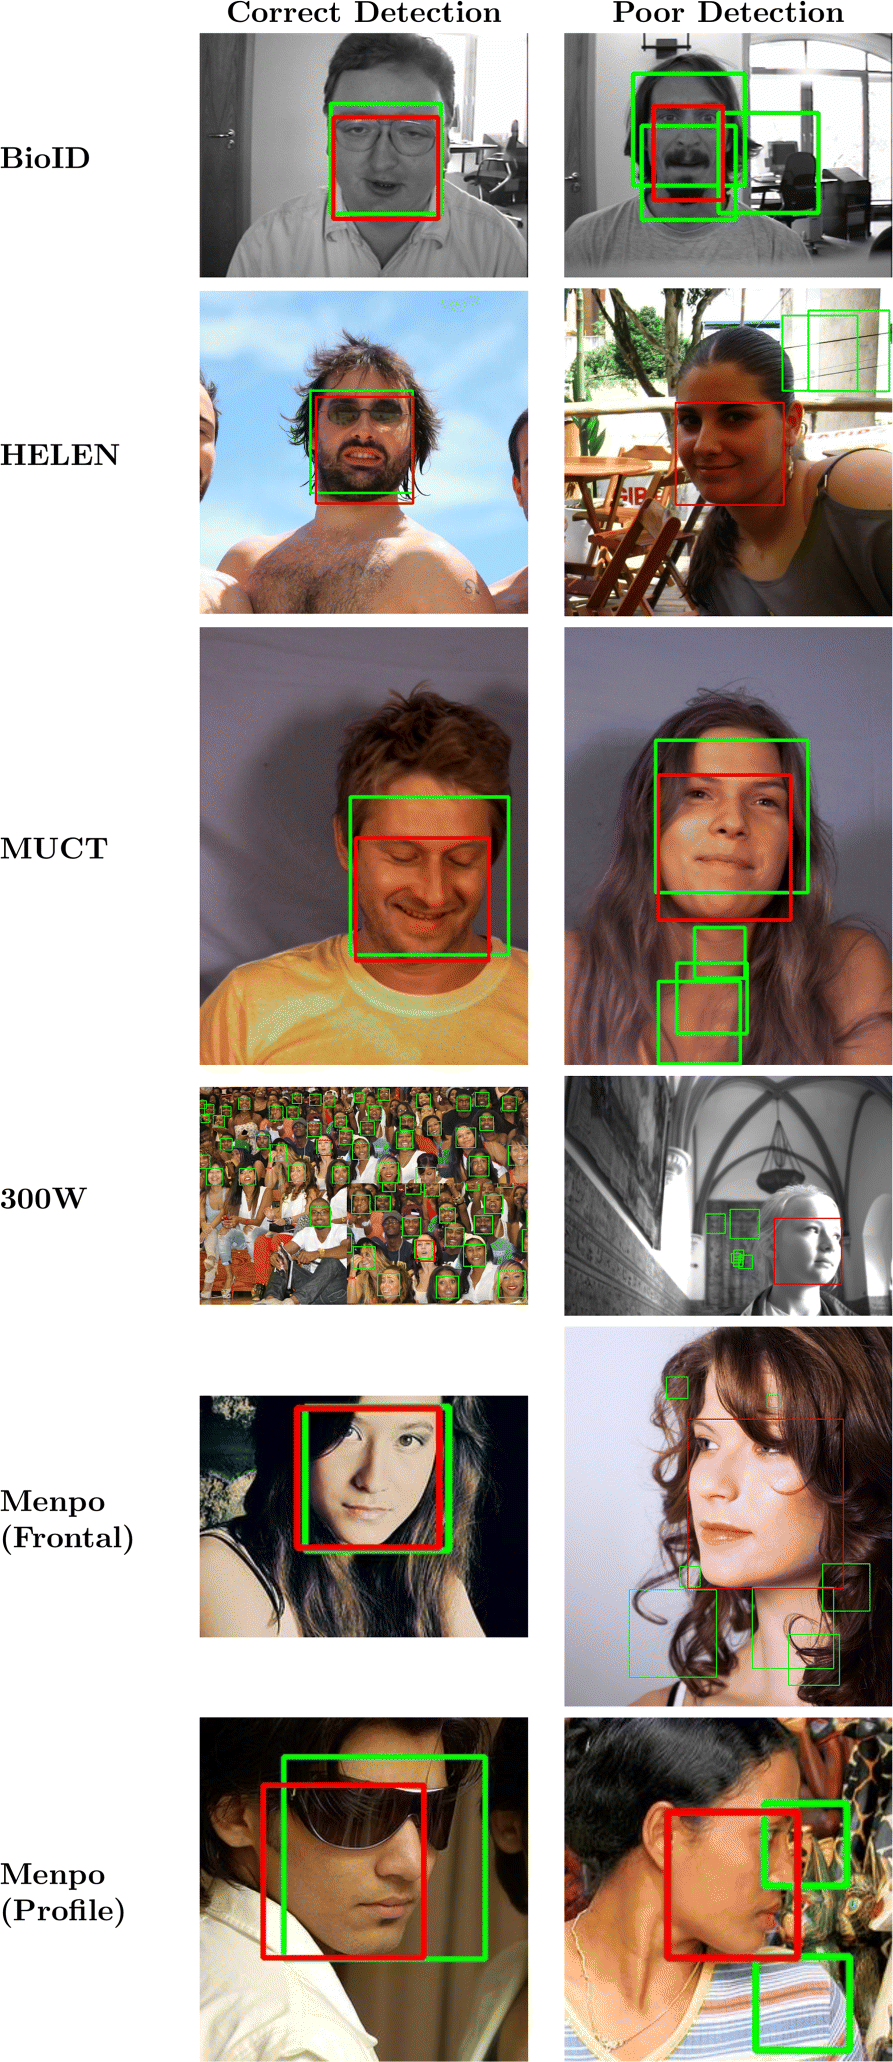 A review of image-based automatic facial landmark identification